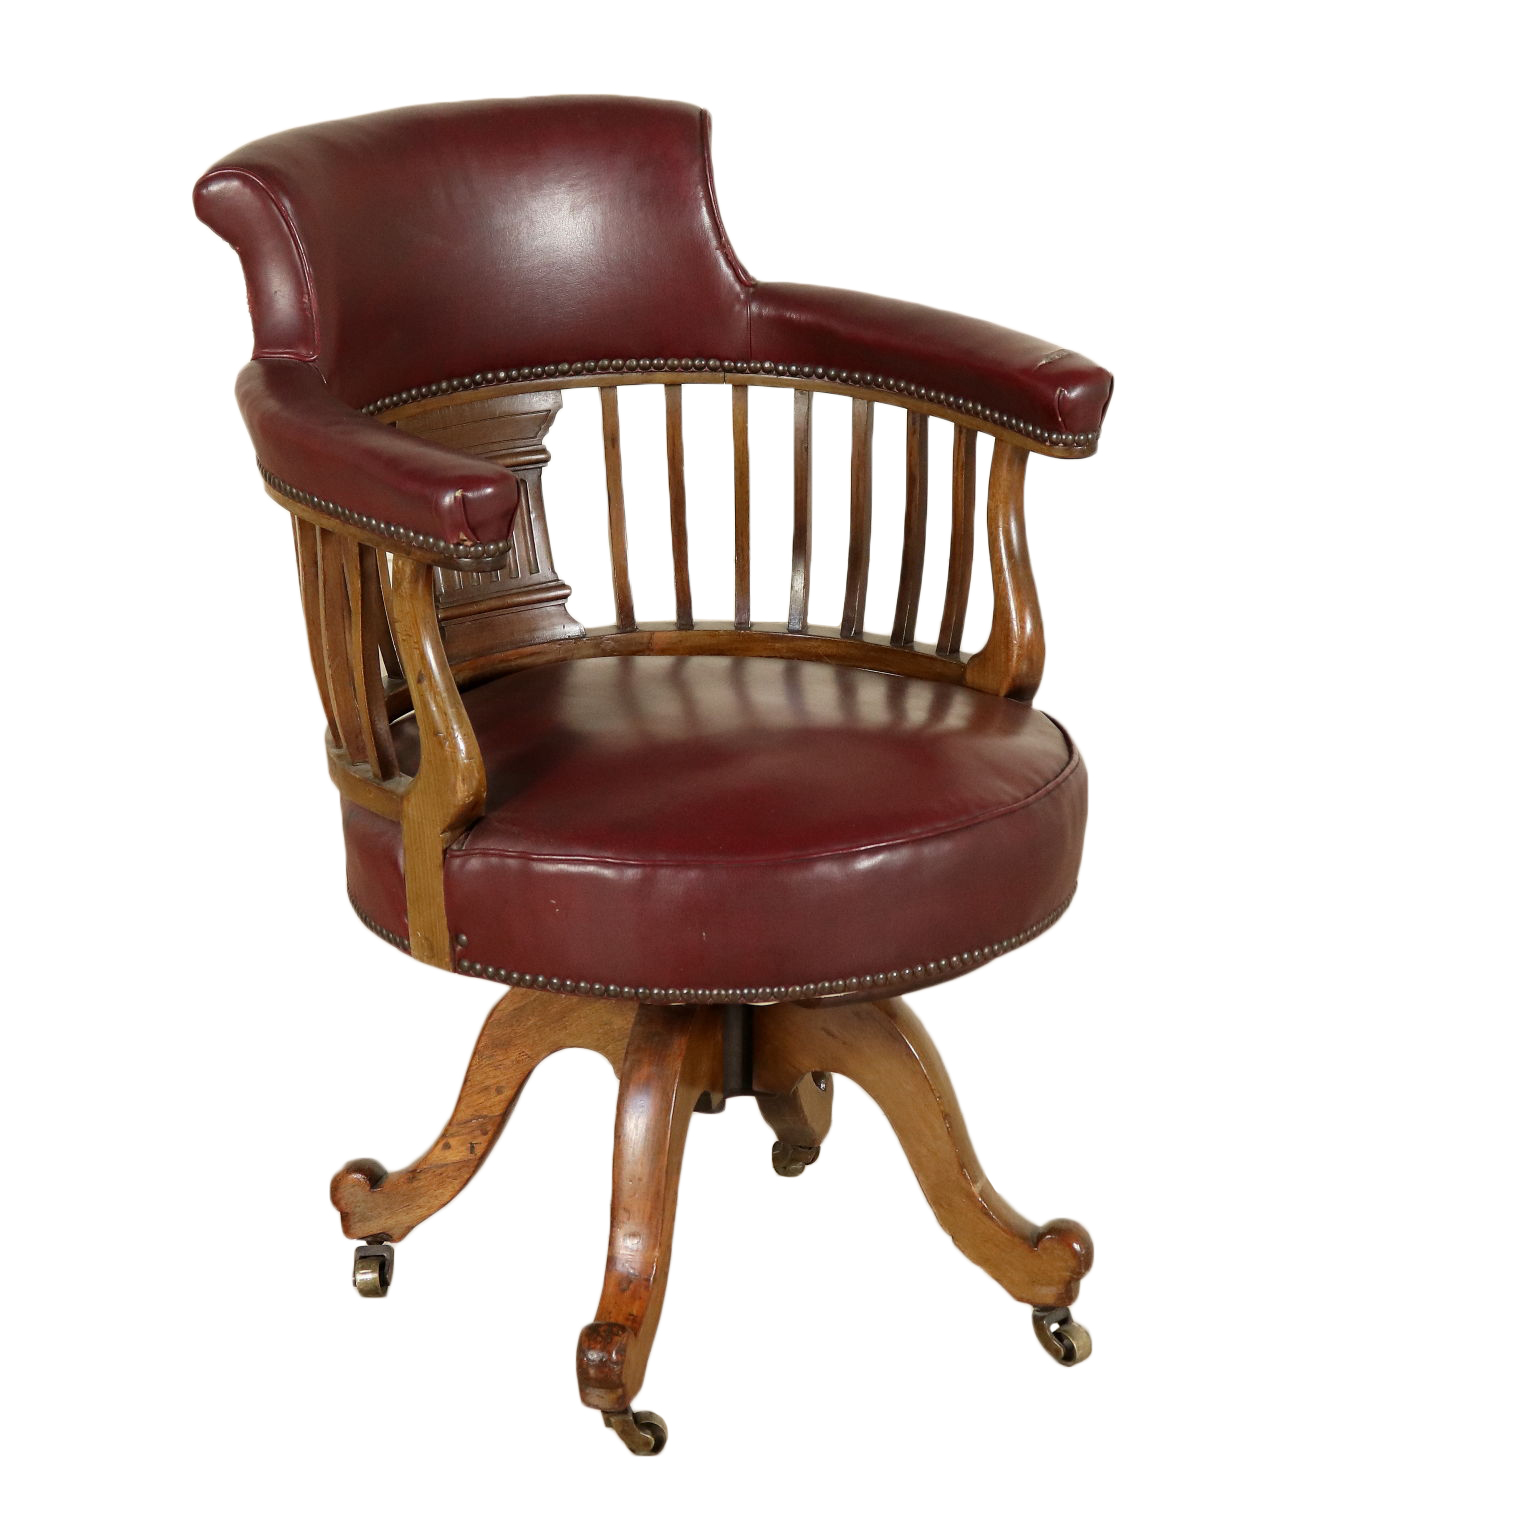 Sensational Swivel Armchair Mahogany Italy First Half Of 1900S Mobili Beatyapartments Chair Design Images Beatyapartmentscom